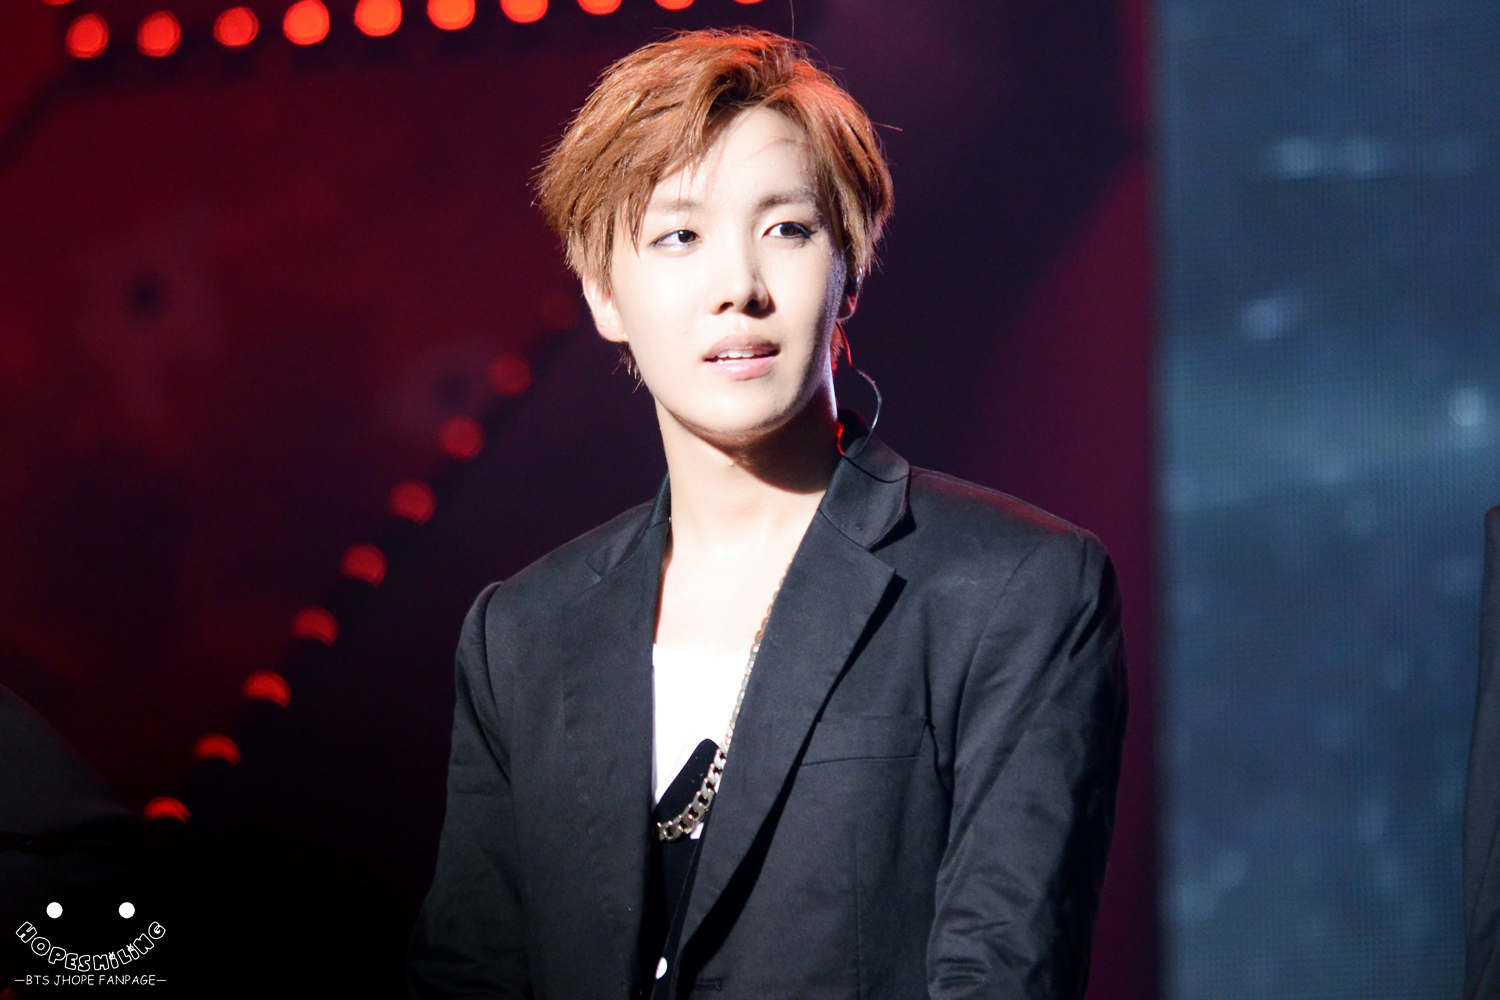 Handsome J-hope at BTS showcase